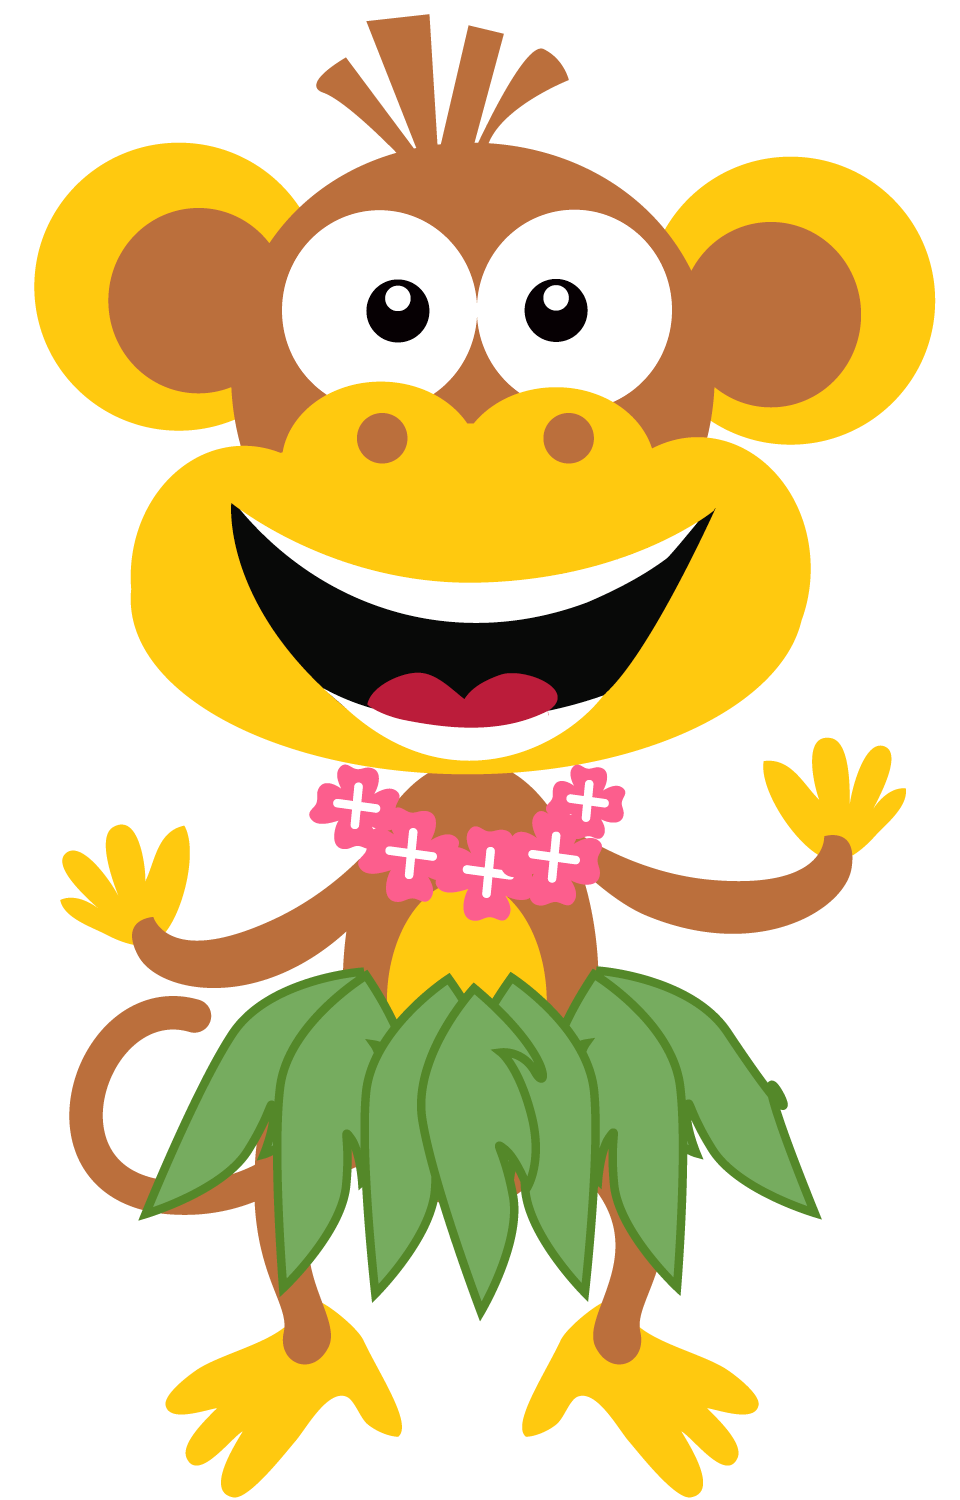 Fun summer clipart image free library Free Silly Cliparts, Download Free Clip Art, Free Clip Art ... image free library